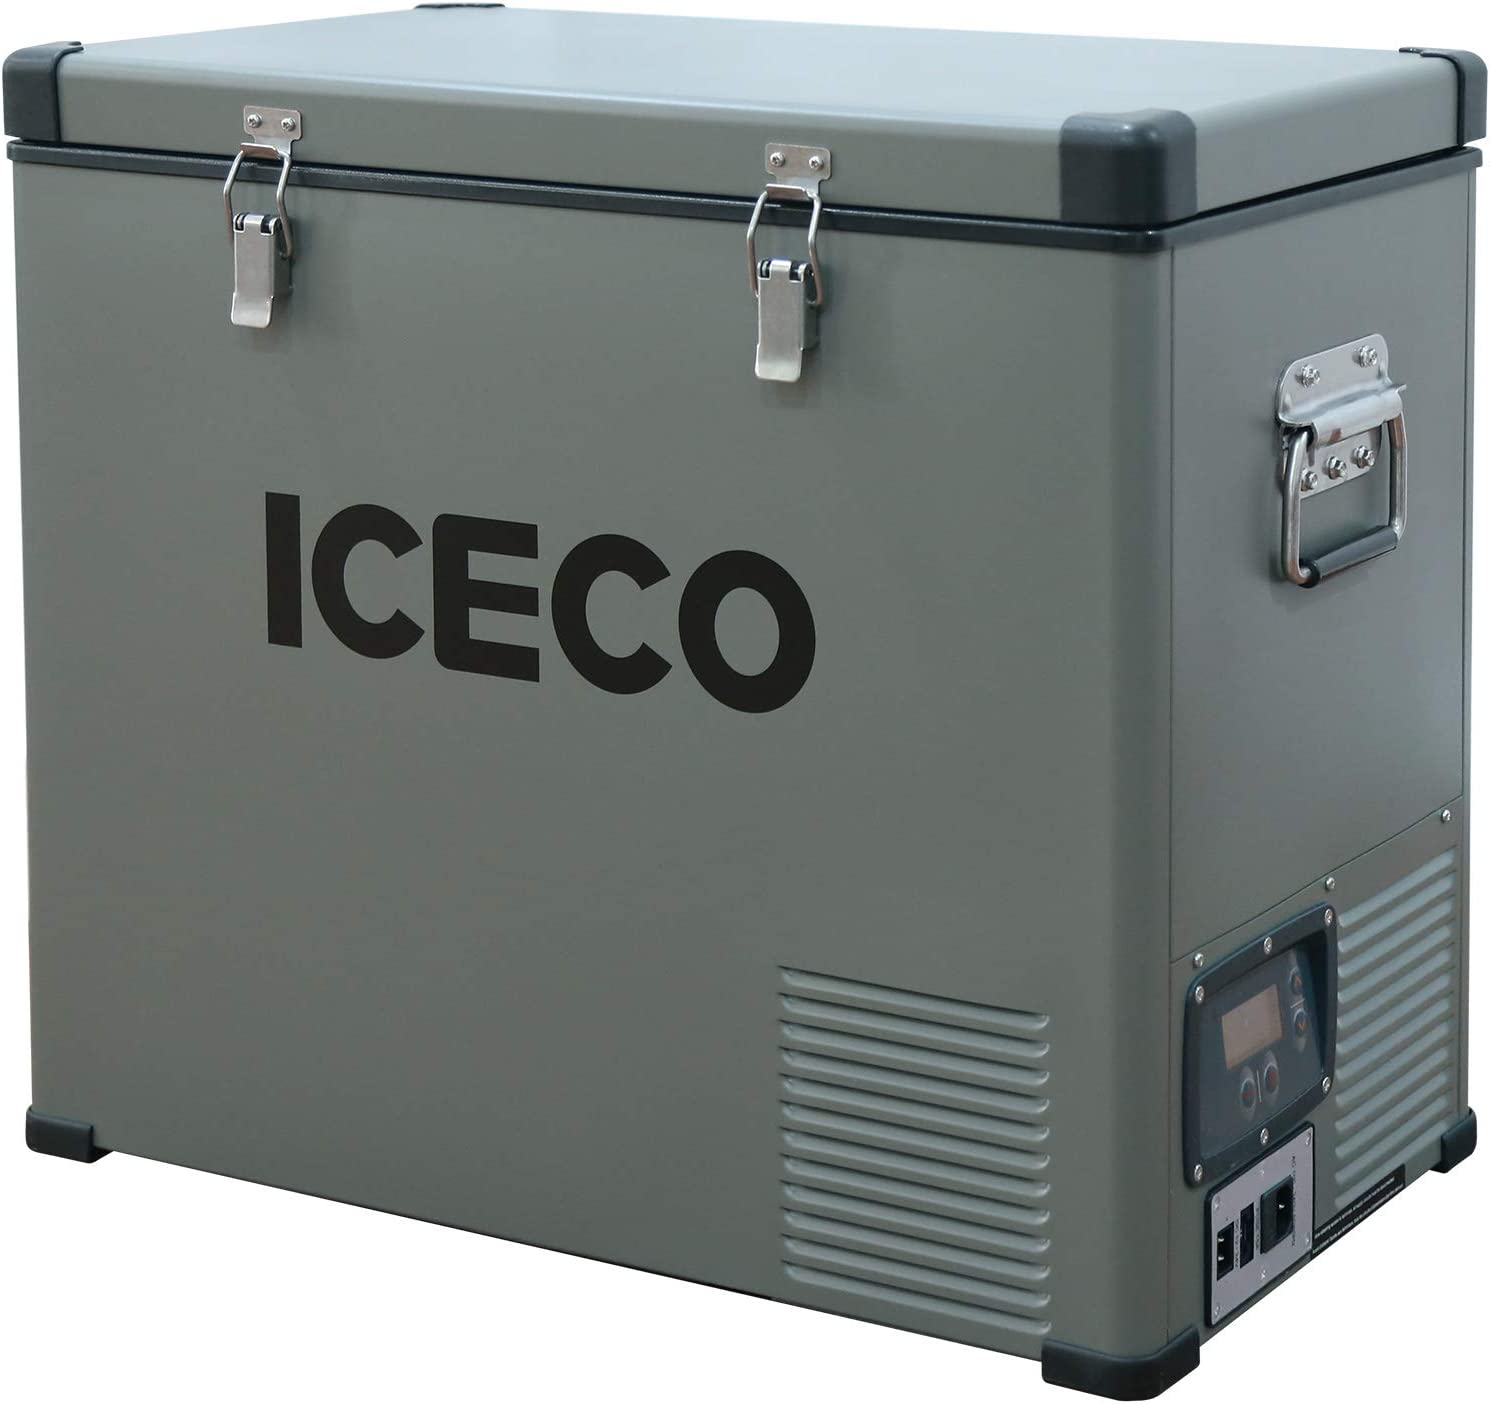 ICECO VL60 63 Quart Single Zone Portable Refrigerator with SECOP Compressor, 60 Liters Platinum Compact Refrigerator, DC 12/24V, AC 110-240V, 0℉ to 50℉, Home & Car Use (without Insulate Cover)